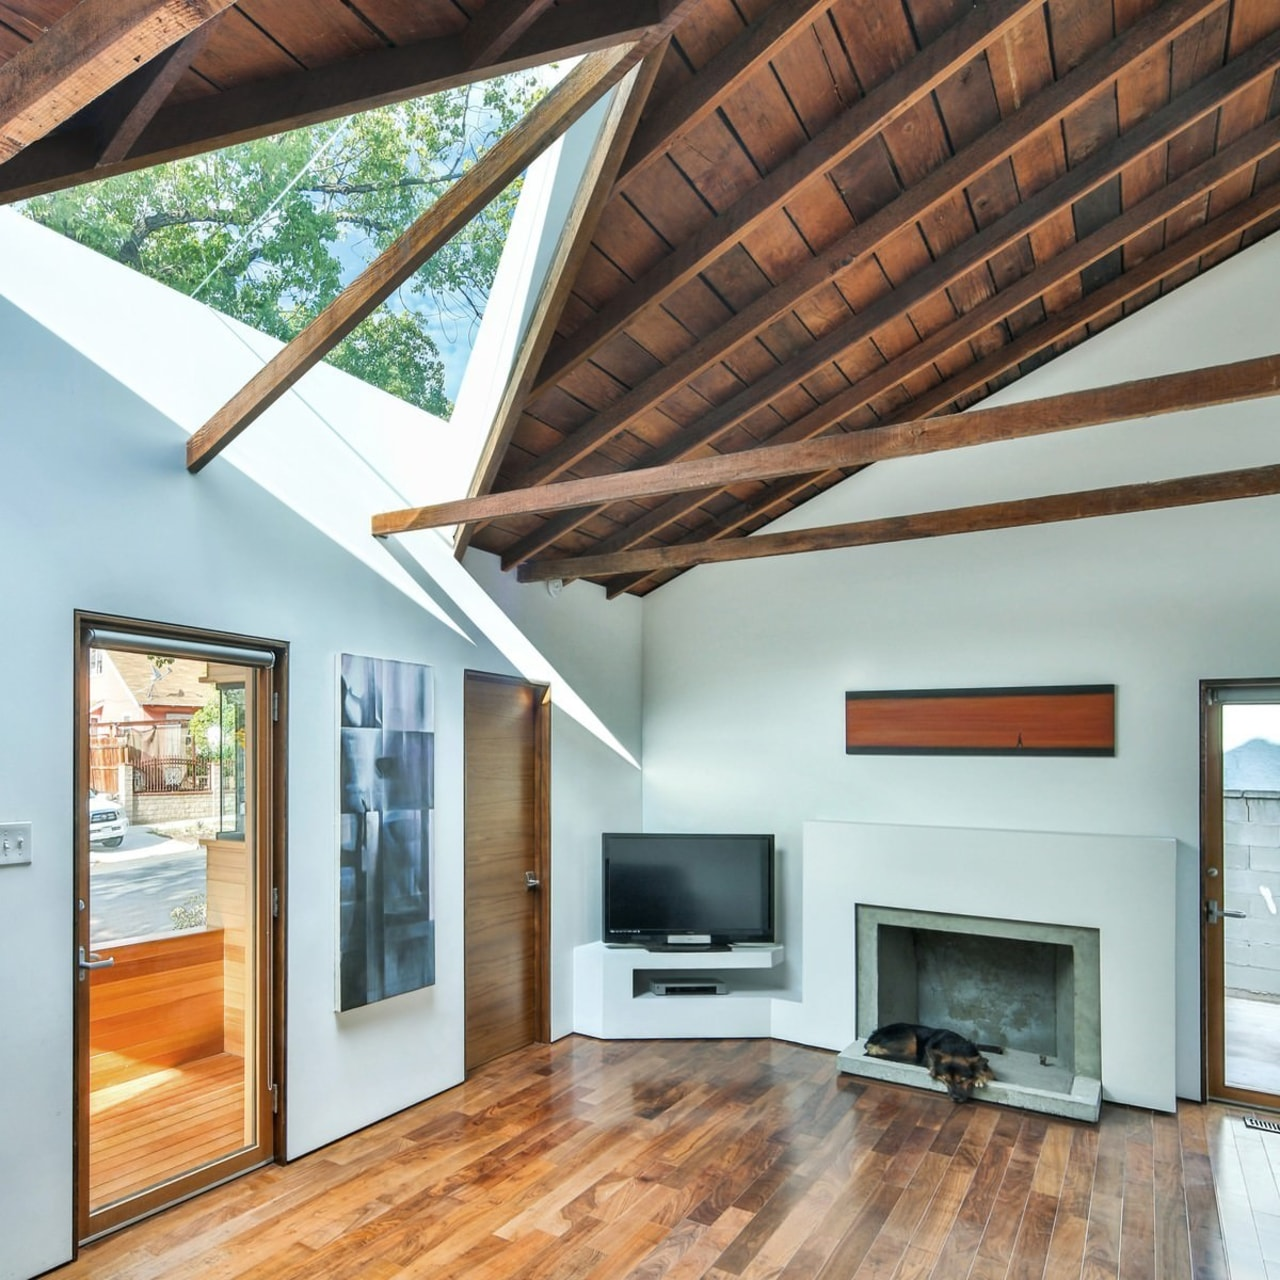 This triangular window lights up the living room architecture, beam, ceiling, daylighting, floor, hardwood, home, house, interior design, laminate flooring, living room, real estate, roof, window, wood, wood flooring, white